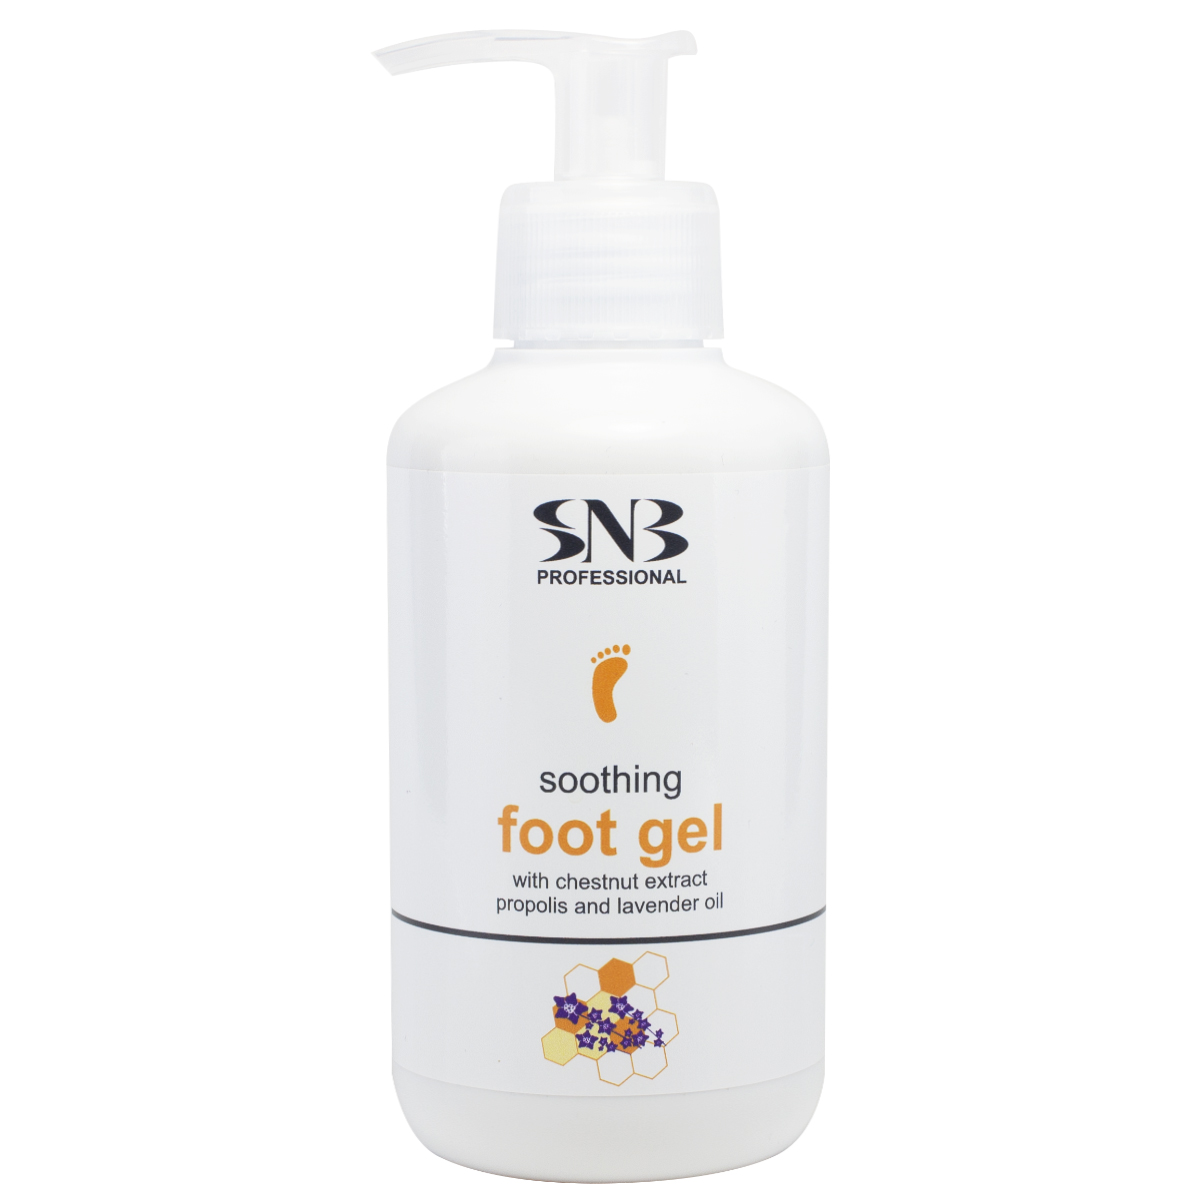 Soothing Foot Gel with Chestnut extract, Propolis and Lavender oil 250 ml